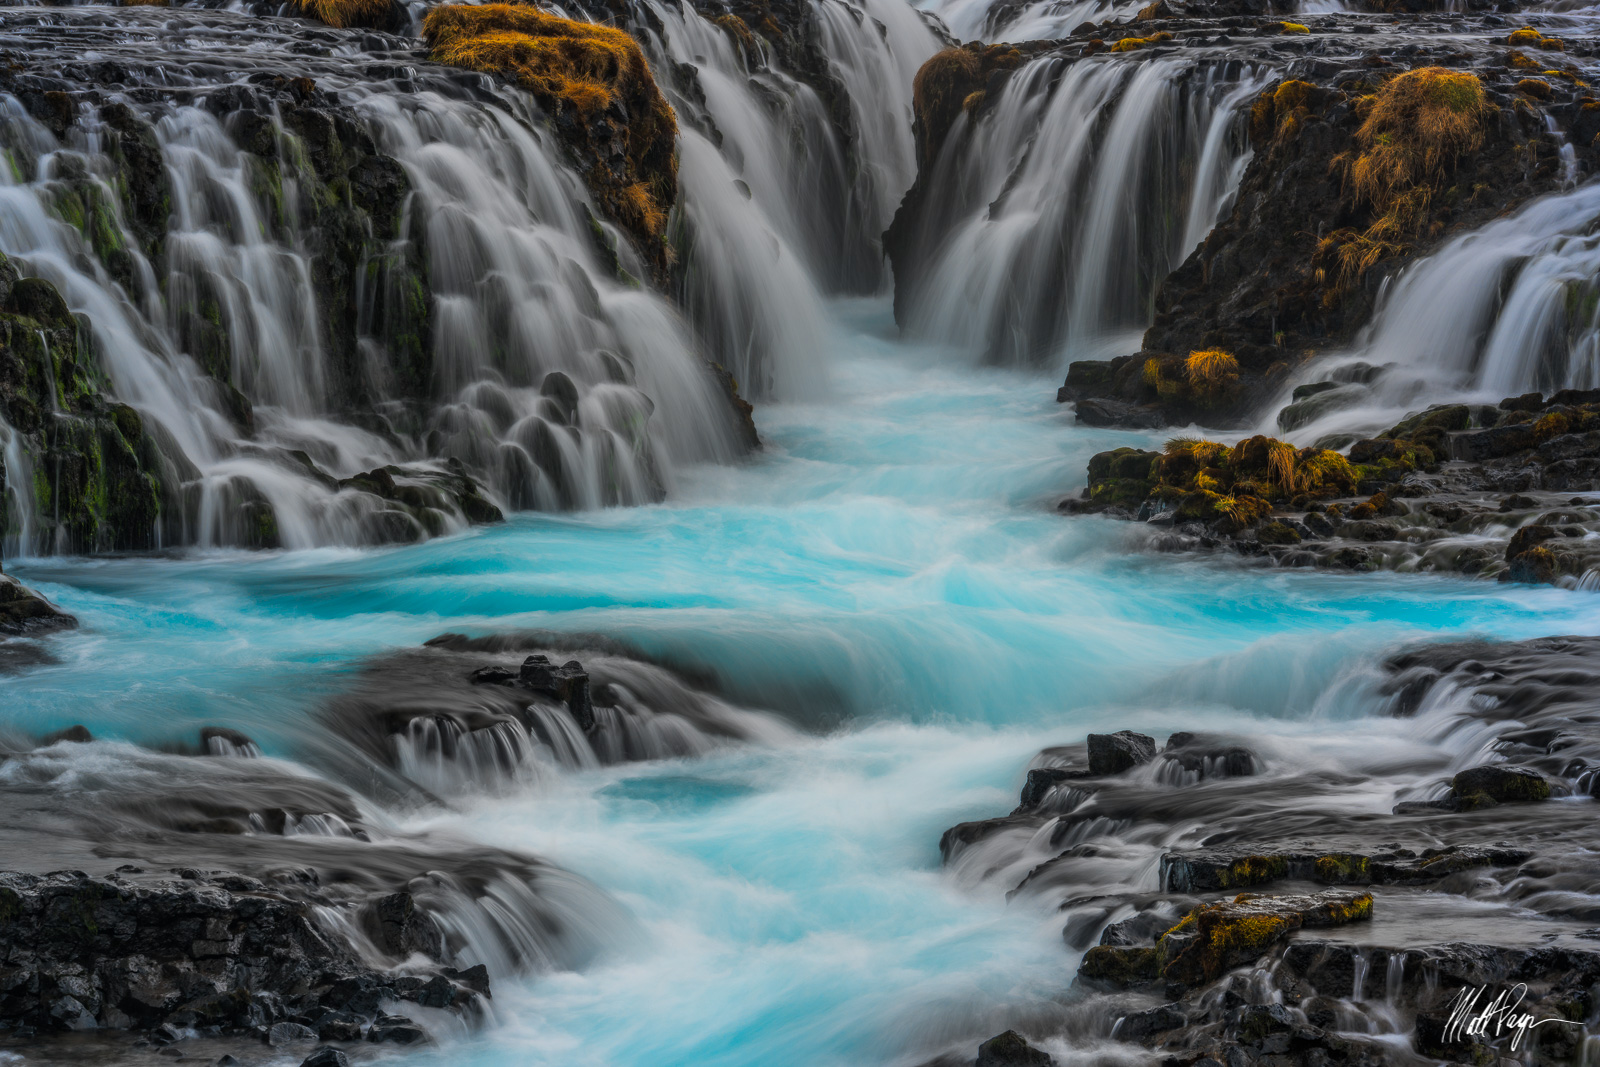 Brúarfoss, Iceland, Landscape, Magical, Sublime, Water, Waterfall, beautiful, flowing, turquoise, calm, photo